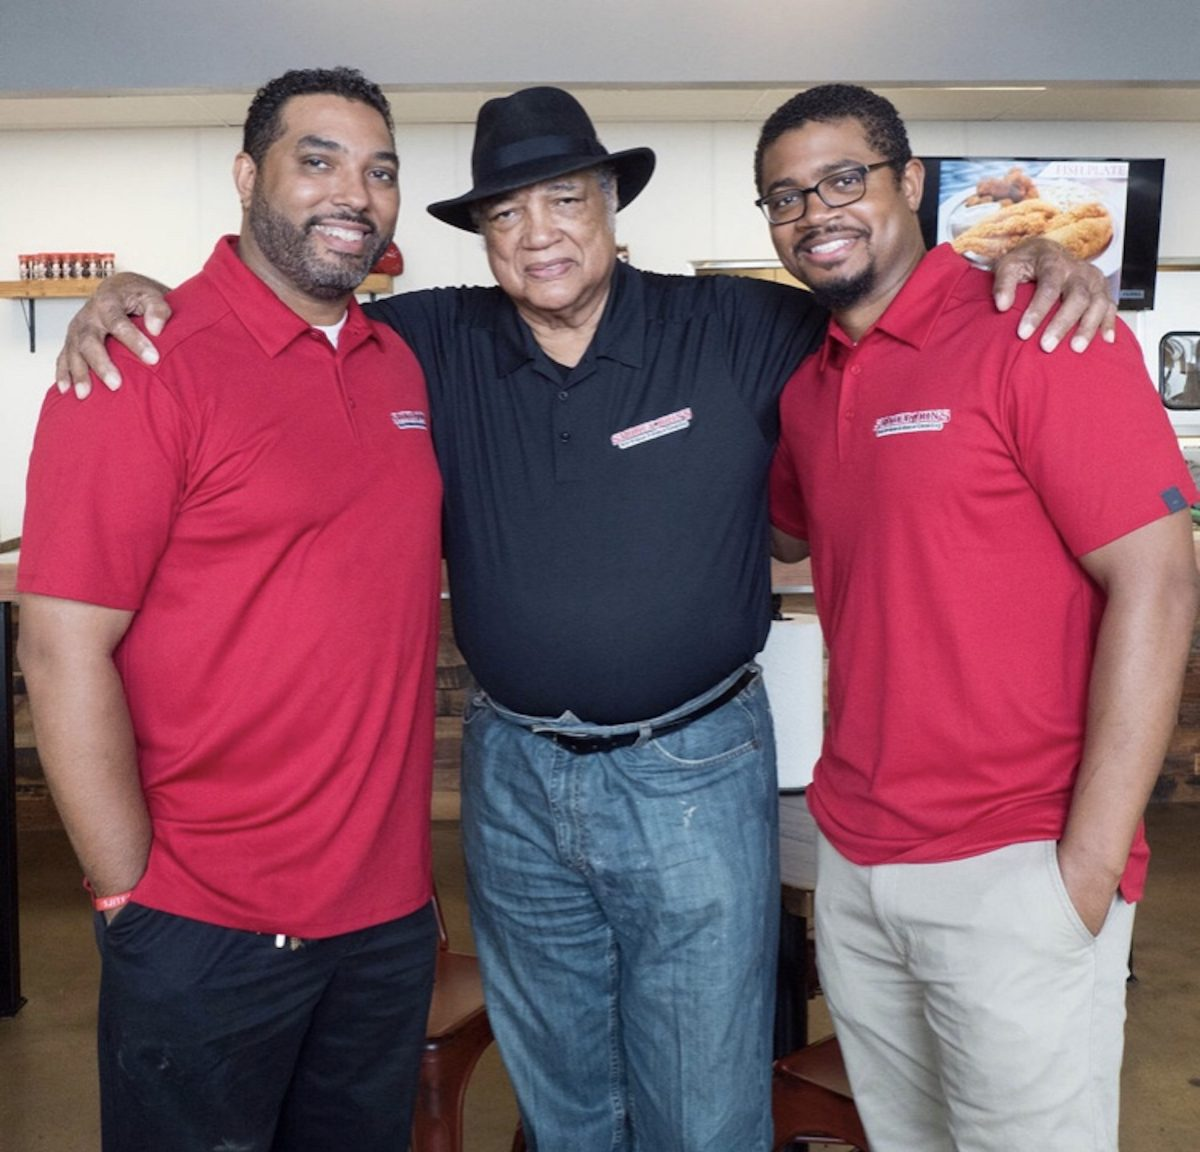 Smokey John's Bar-B-Que owners Brent and Juan with their father